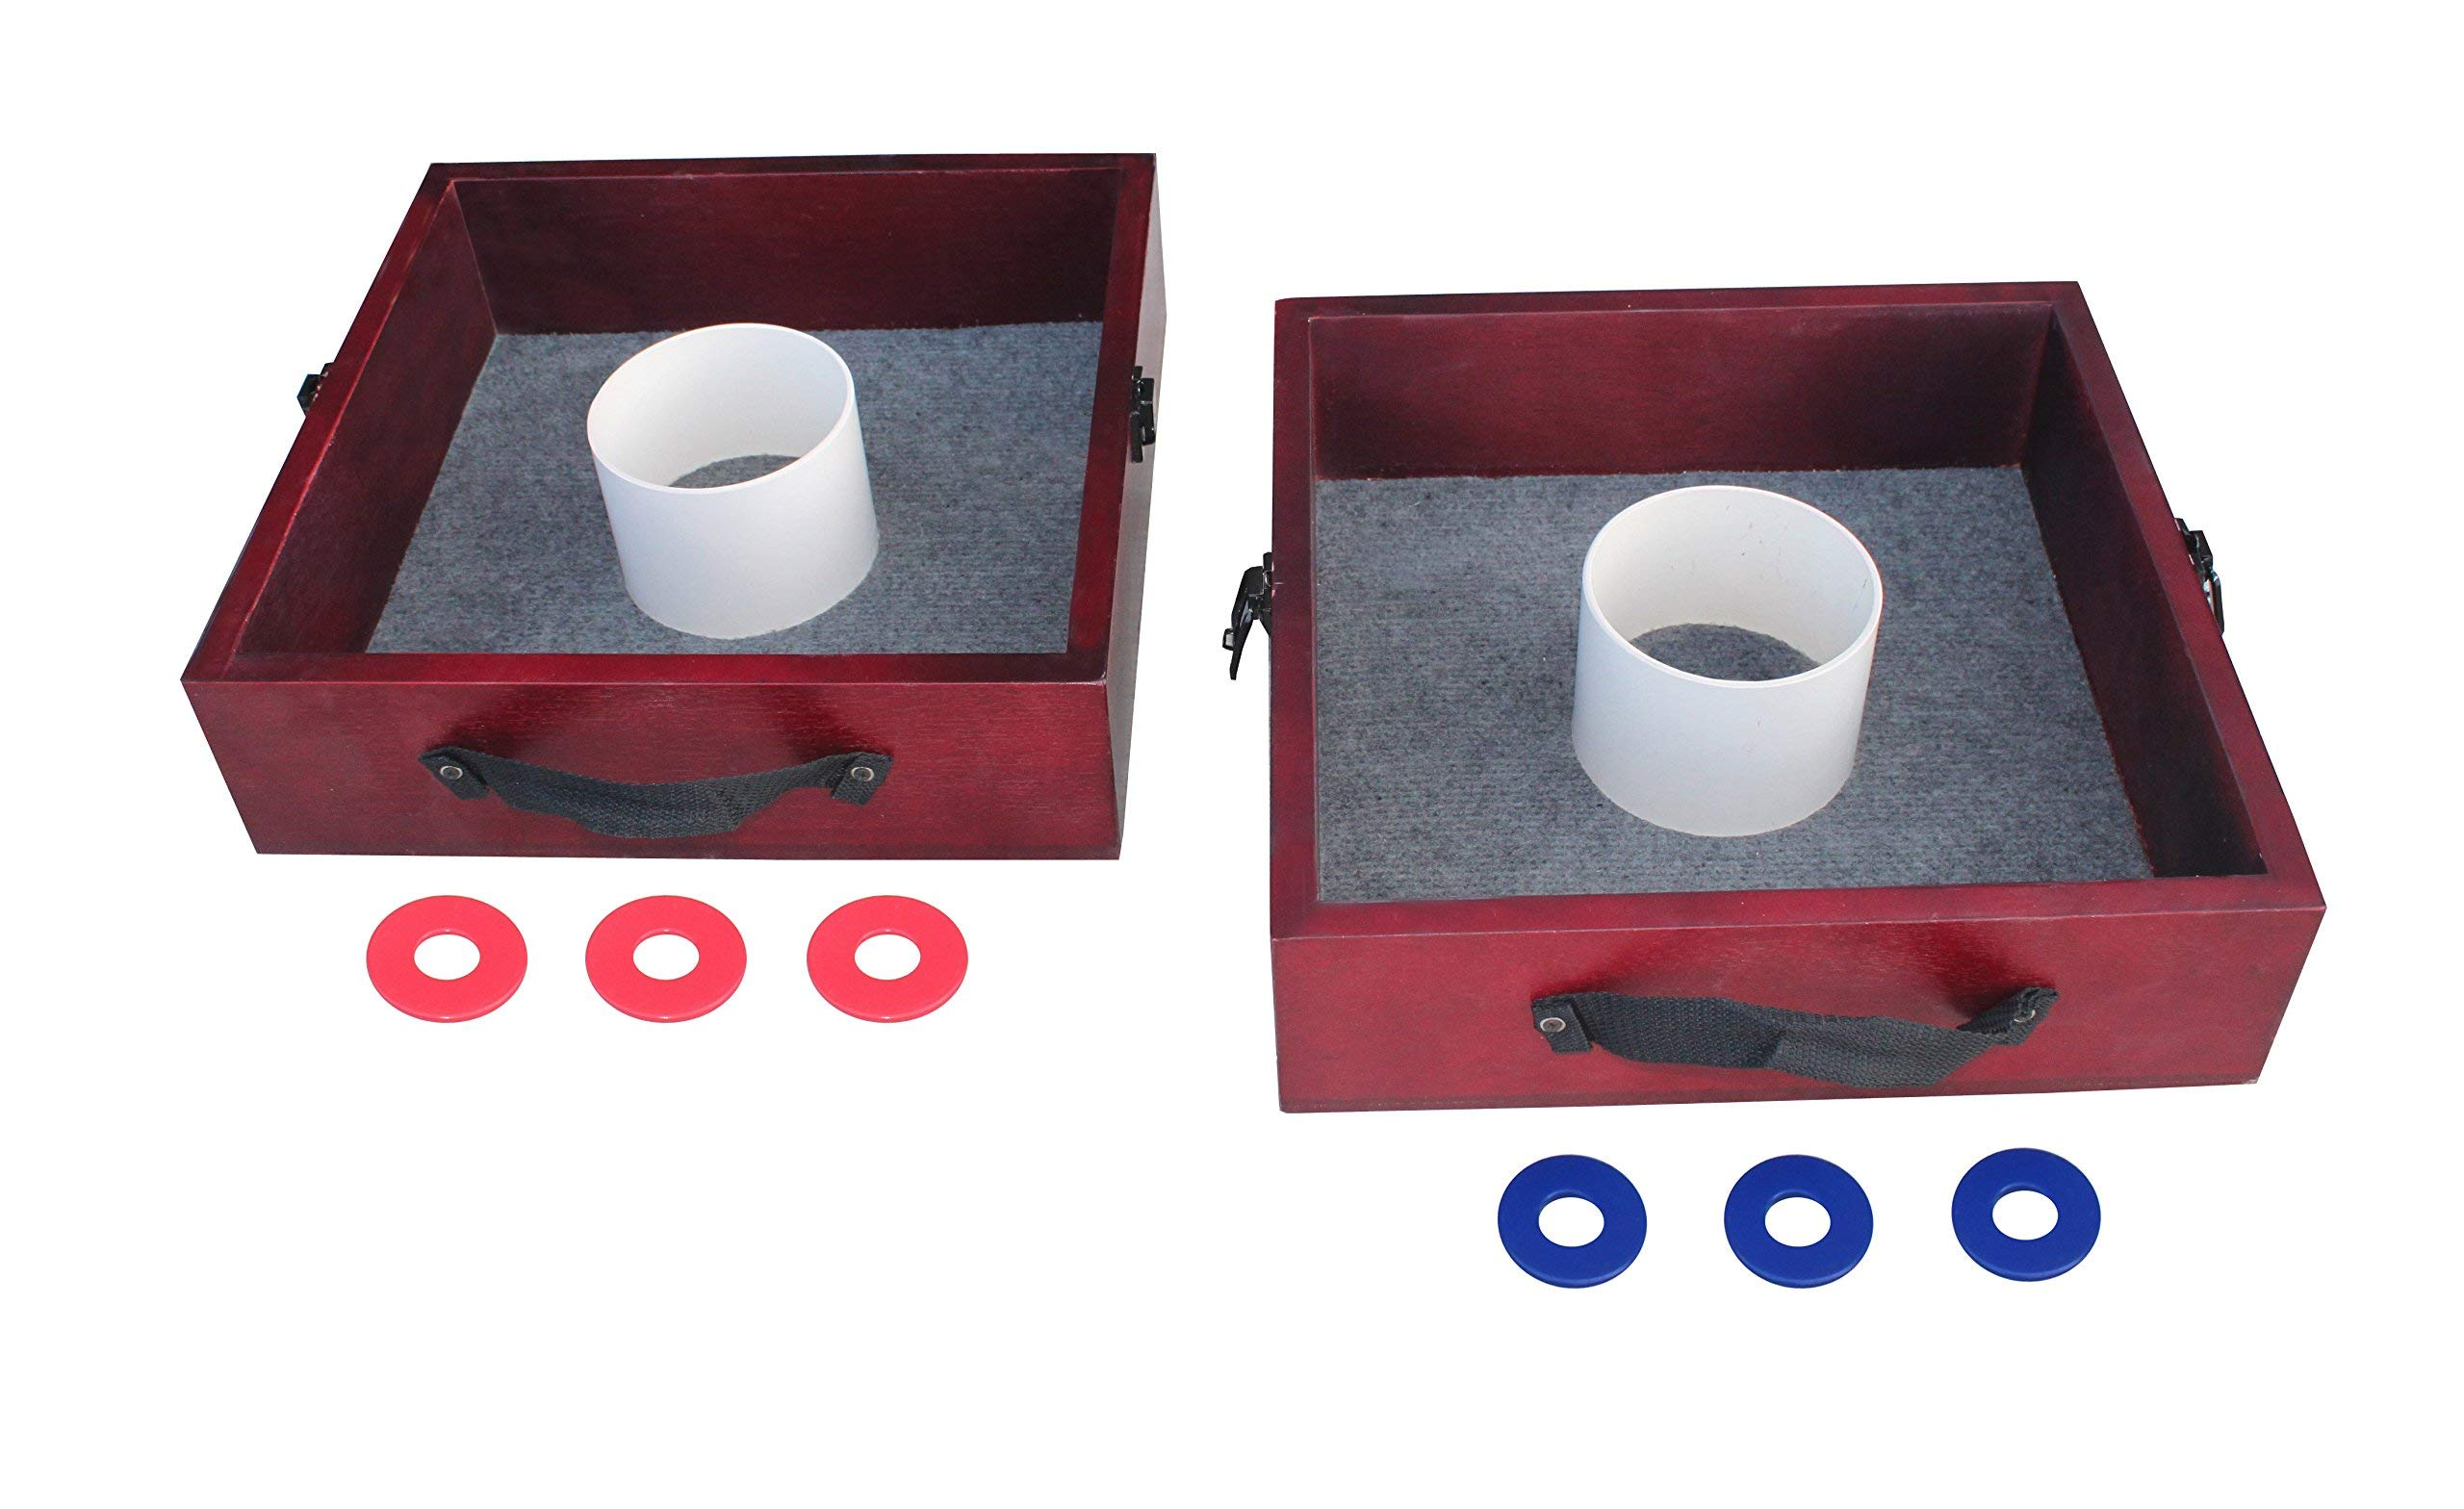 Triumph Tournament Outdoor Washer Toss Game Includes 6 Steel Washers and Easily Transportable (Renewed) by Triumph Sports